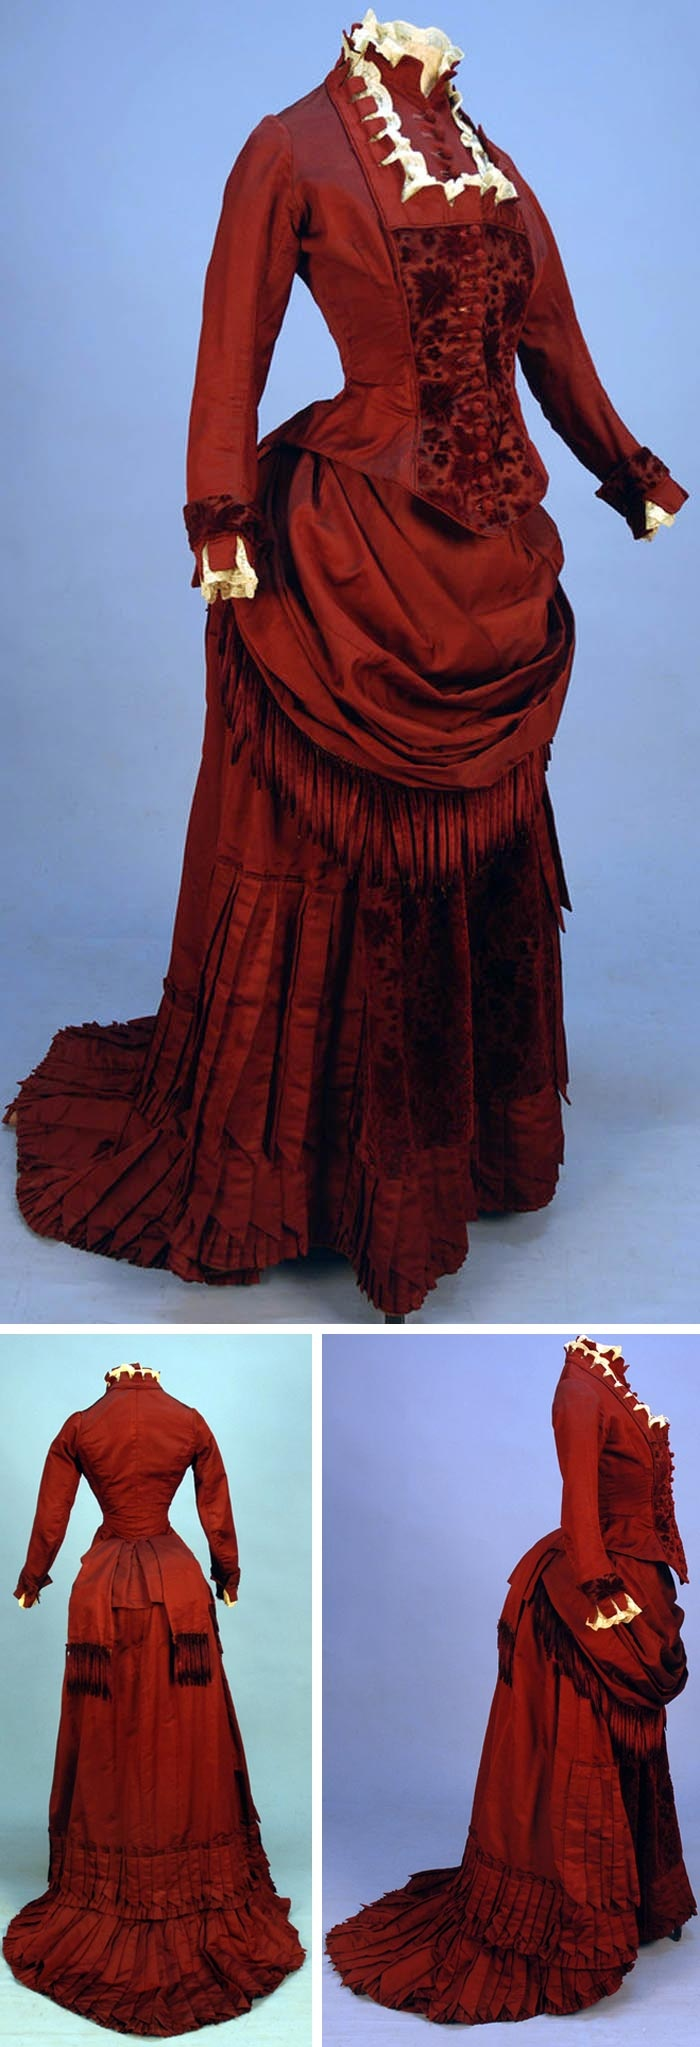 Circa 1880 silk and velvet bustle dress with fringe, claret-colored ottoman with…